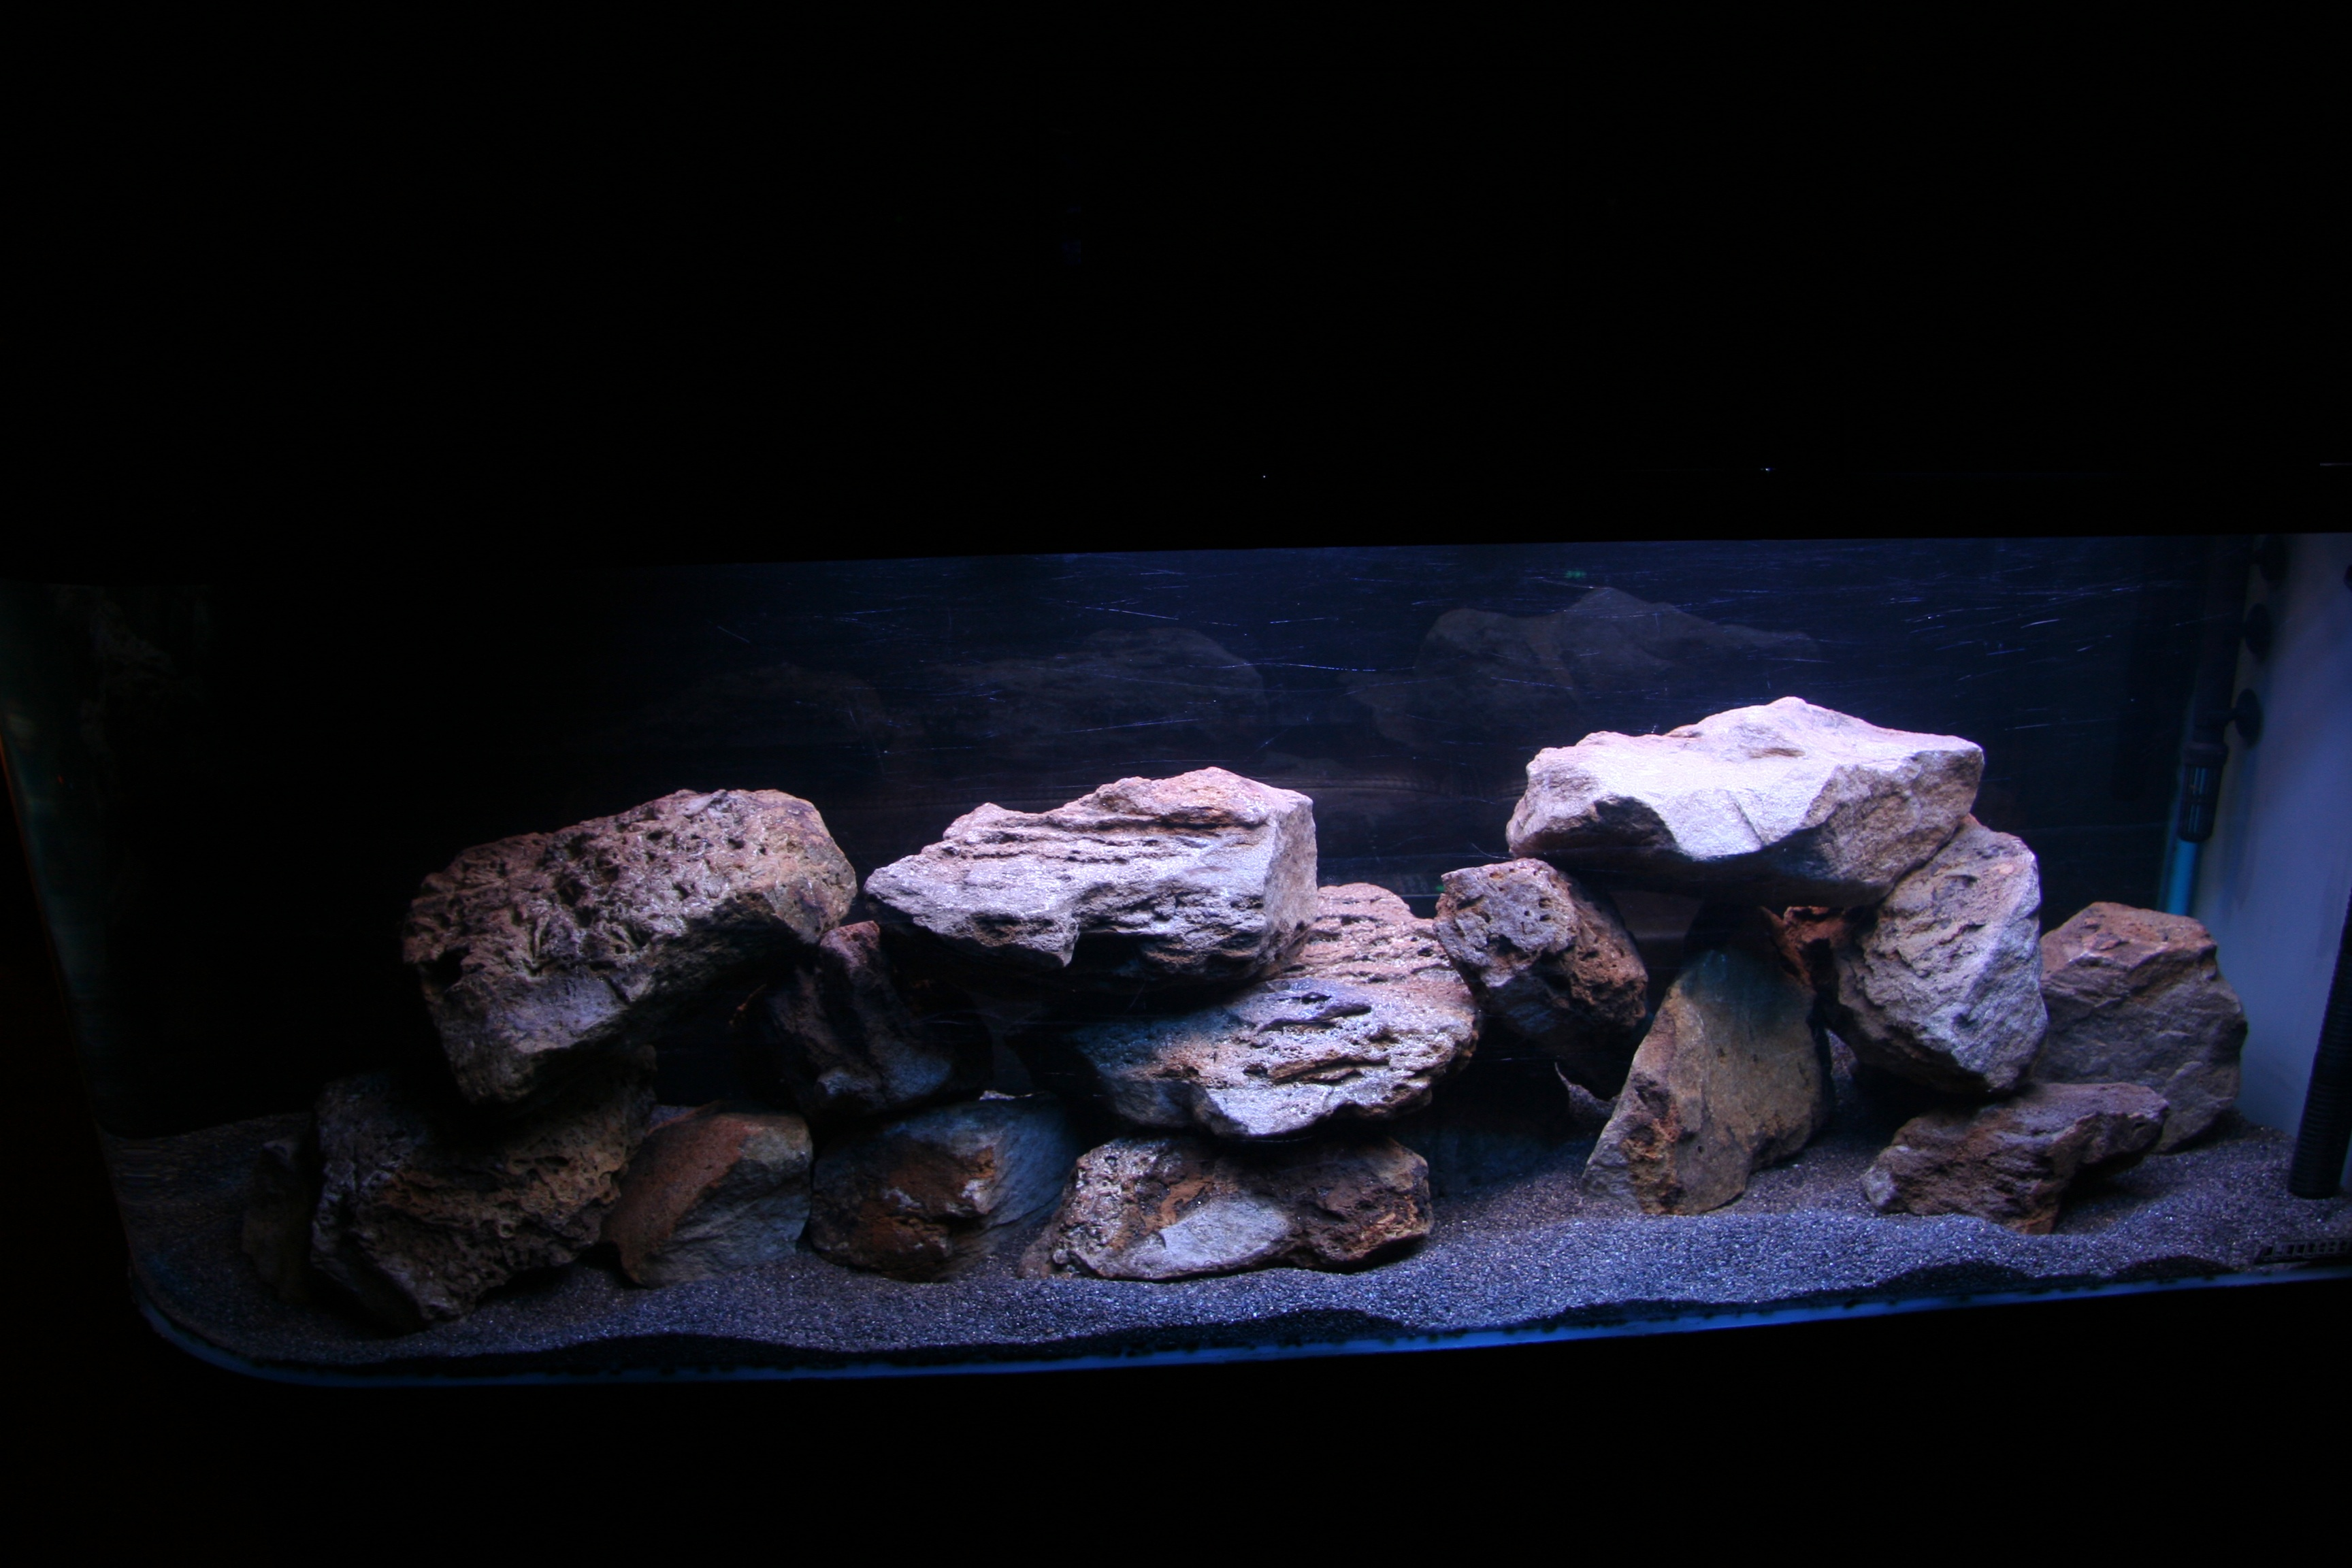 Editor pambazuka moreover Y2ljaGxpZCB0YW5rIGRlY29yYXRpb24gaWRlYXM additionally Francis de Gruchy Malawi Hap Tank setup additionally Aquarium Fish With Personality Fish N Tips Temperament Fresh Water Fish in addition 29 Gallon 4. on oscar fish tank setup examples